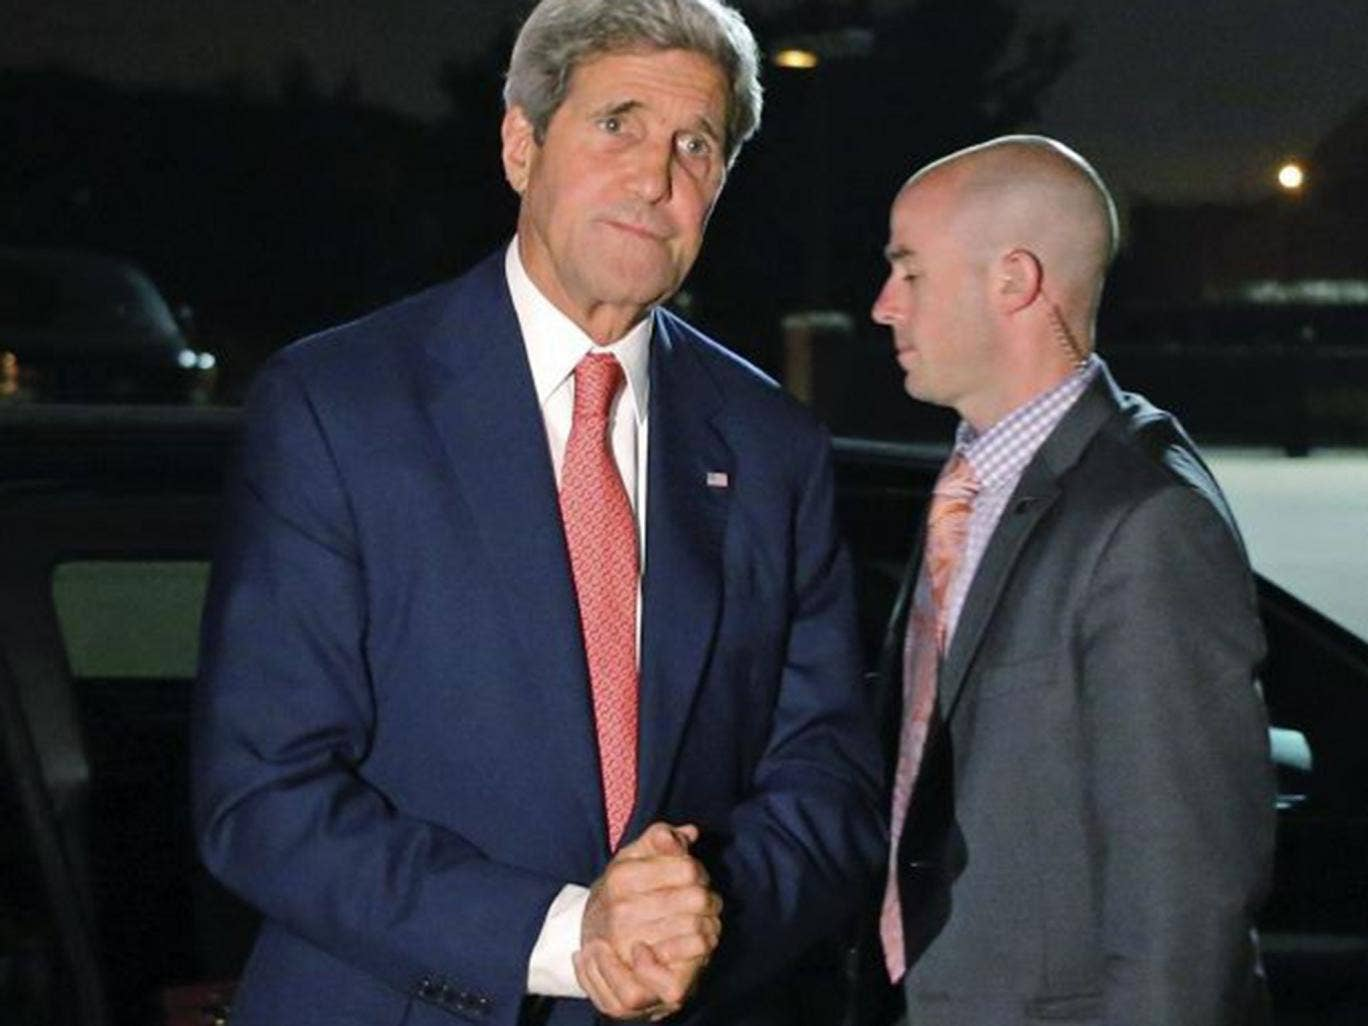 Kerry steps out of his vehicle to board his plane at Andrews Air Force Base as he begins his trip to the Middle East